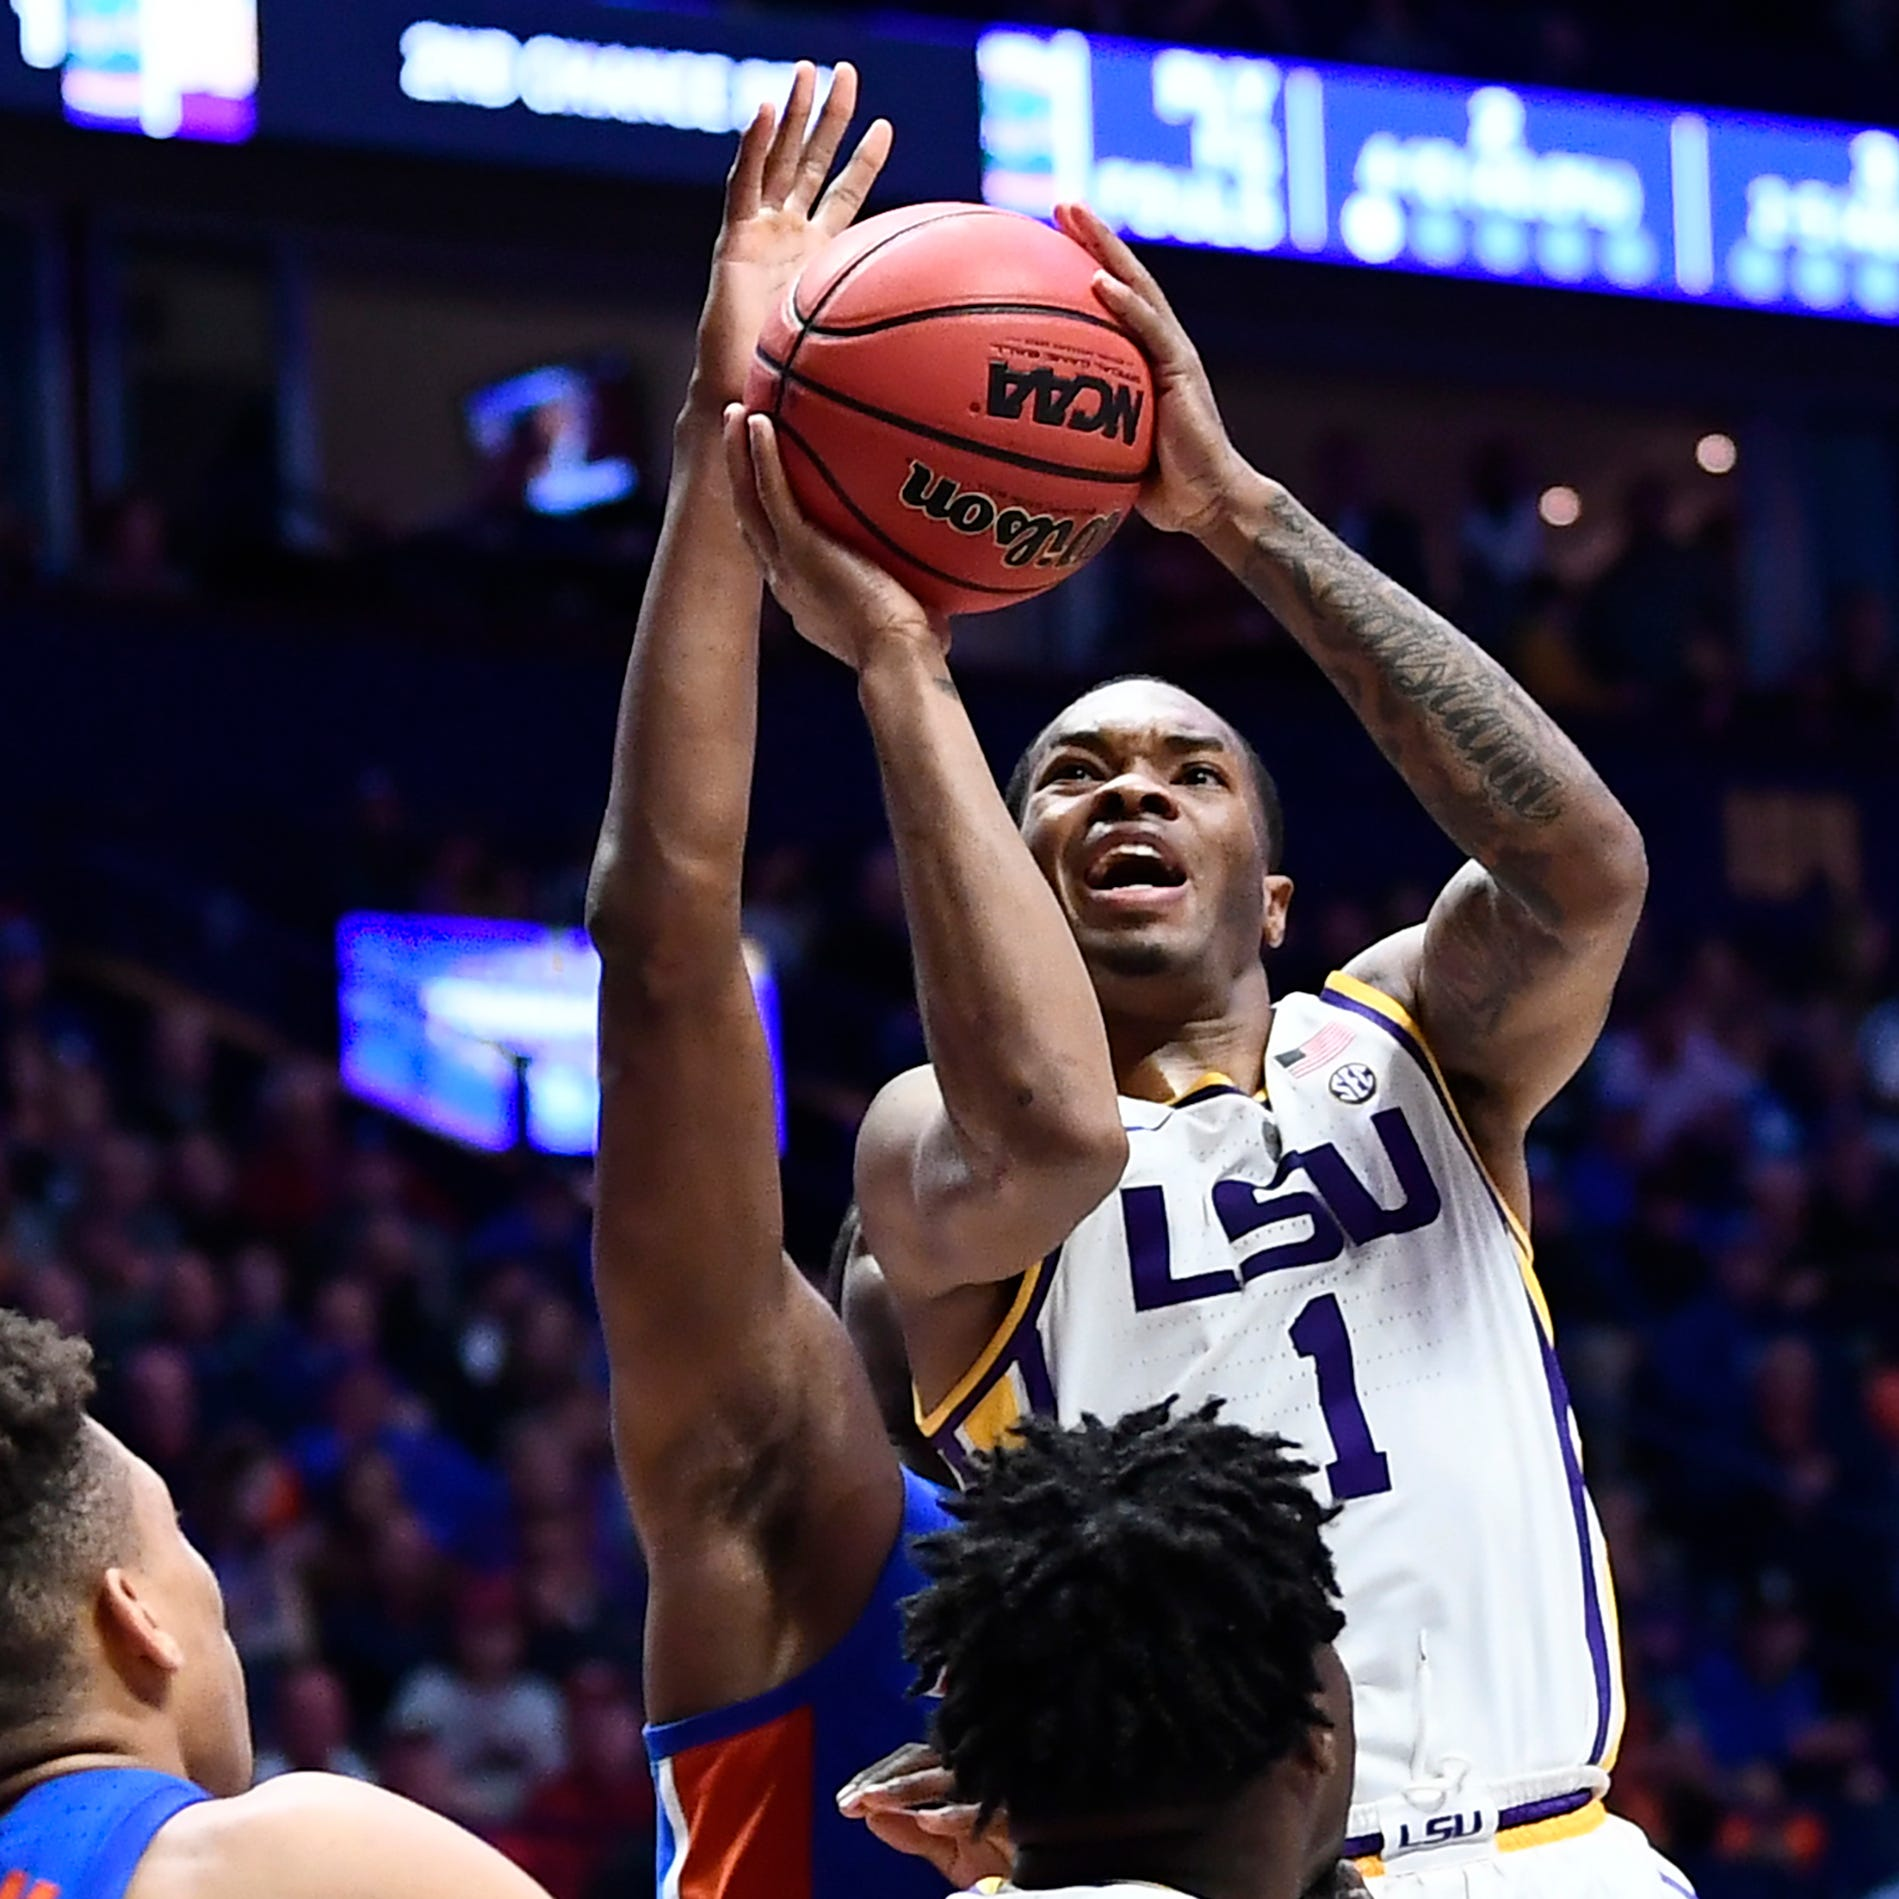 Smart returns for LSU and scores 13, but not enough for win over Florida in SEC Tournament